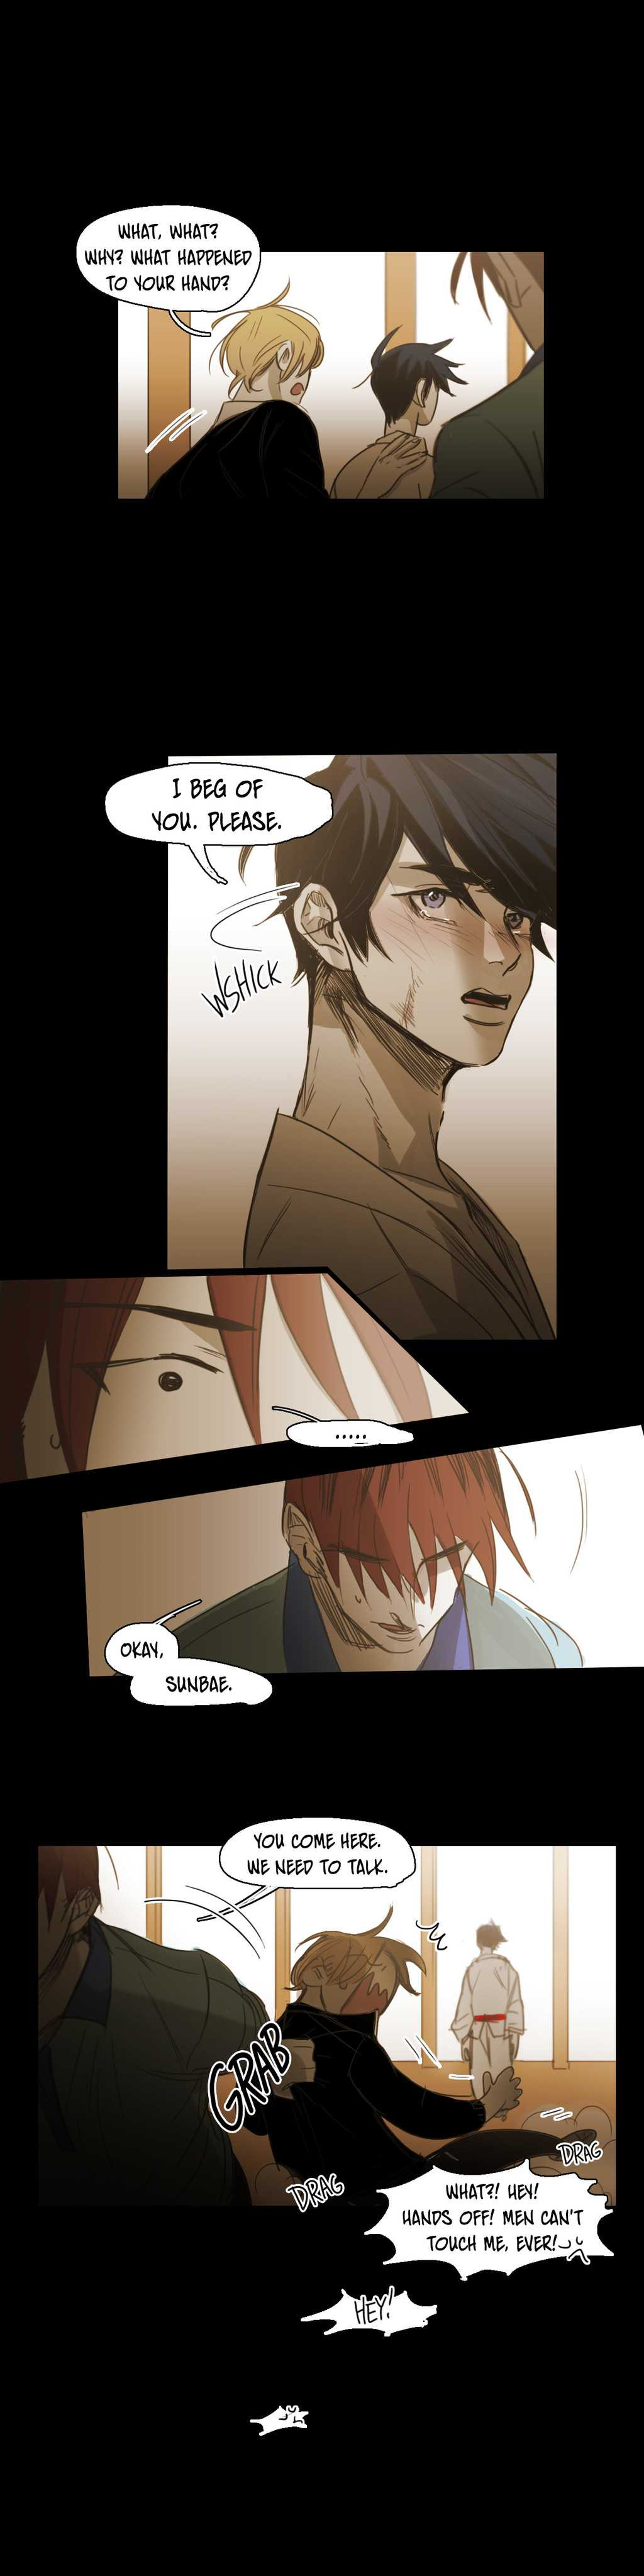 Never Understand - Chapter 57